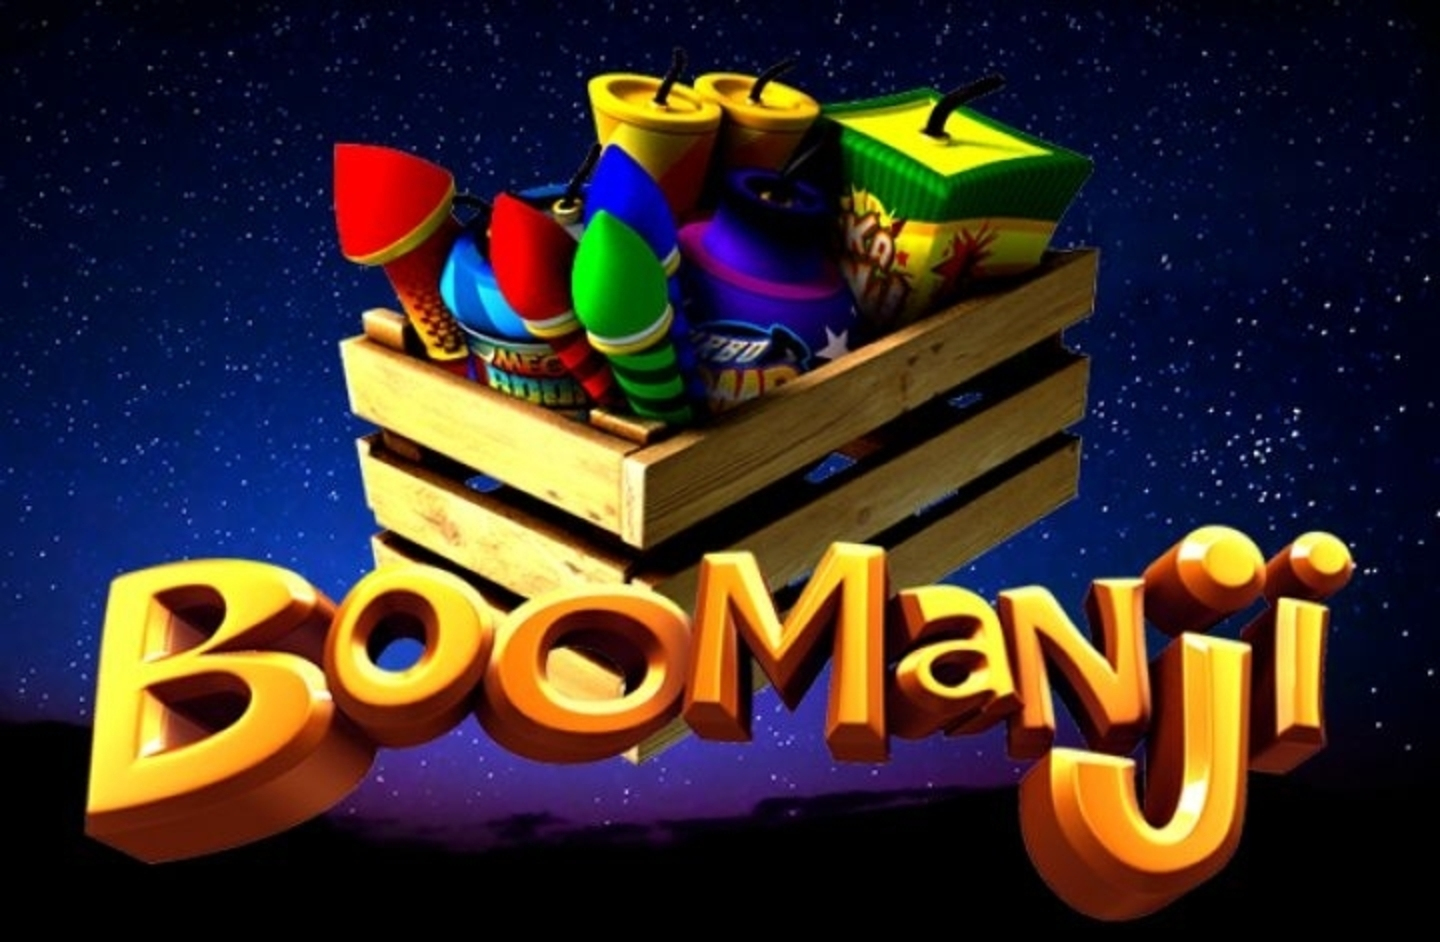 The Boomanji Online Slot Demo Game by Betsoft